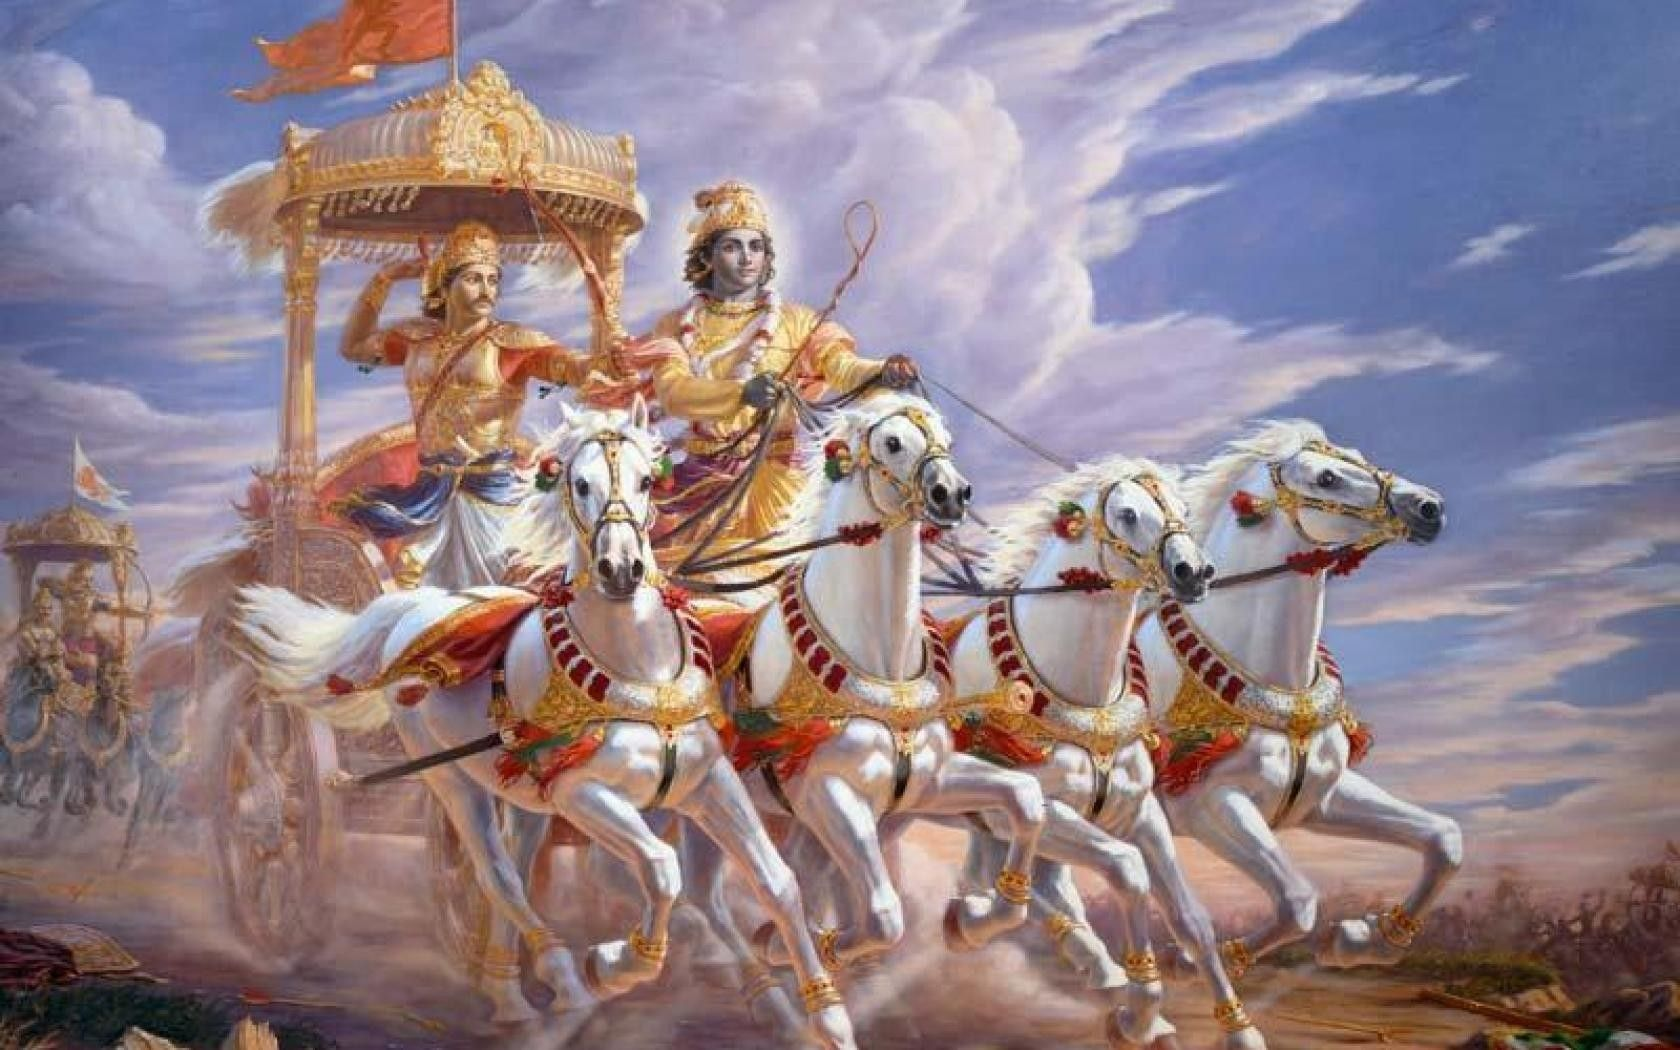 Daily Dose of Bhagwad Gita